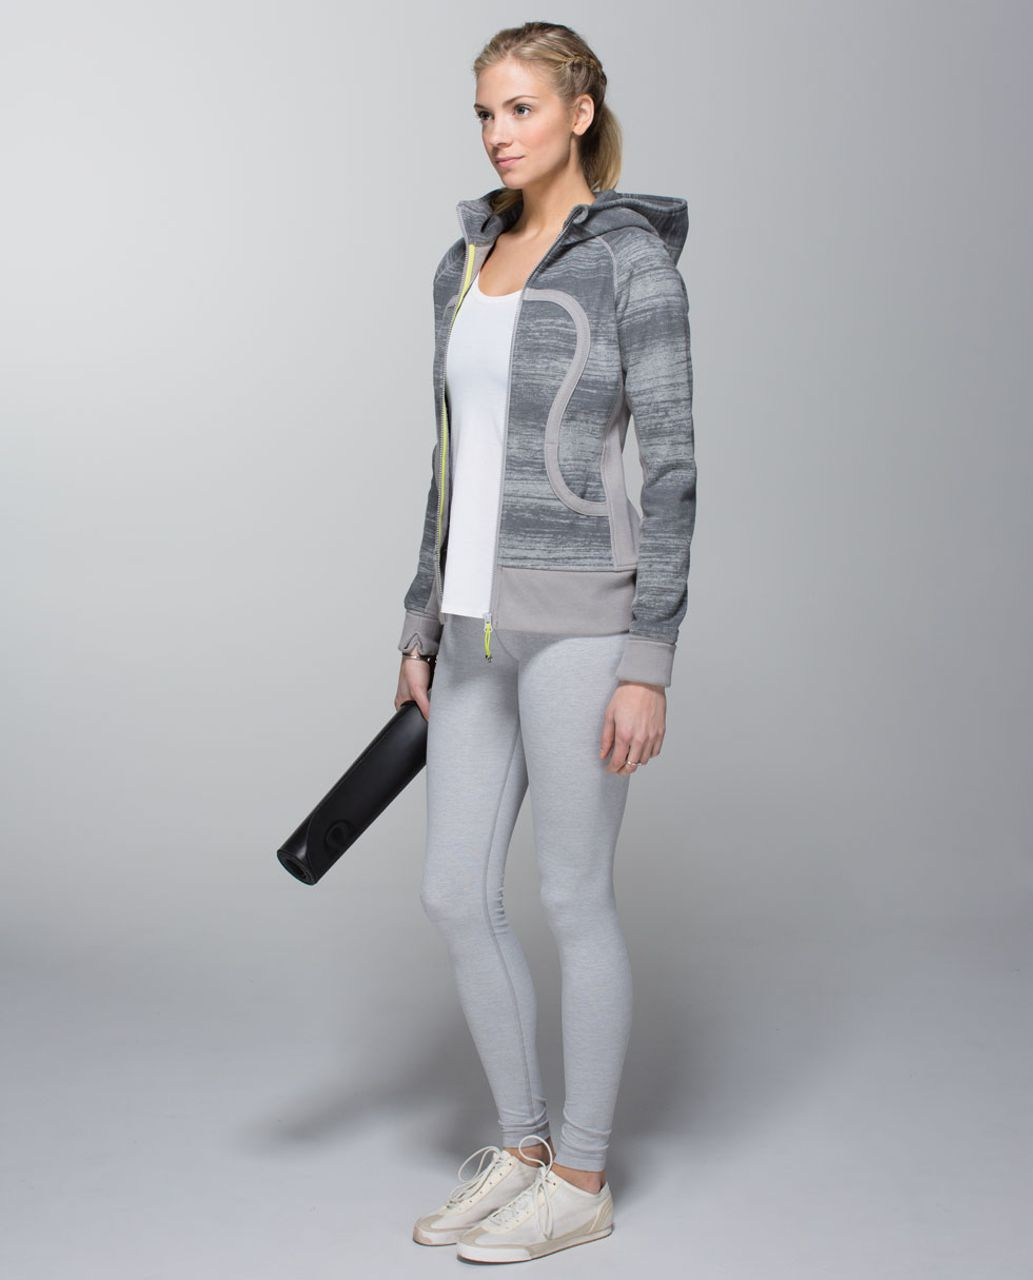 Lululemon Scuba Hoodie II - Righteous Stripe Heathered Medium Grey / Ambient Grey